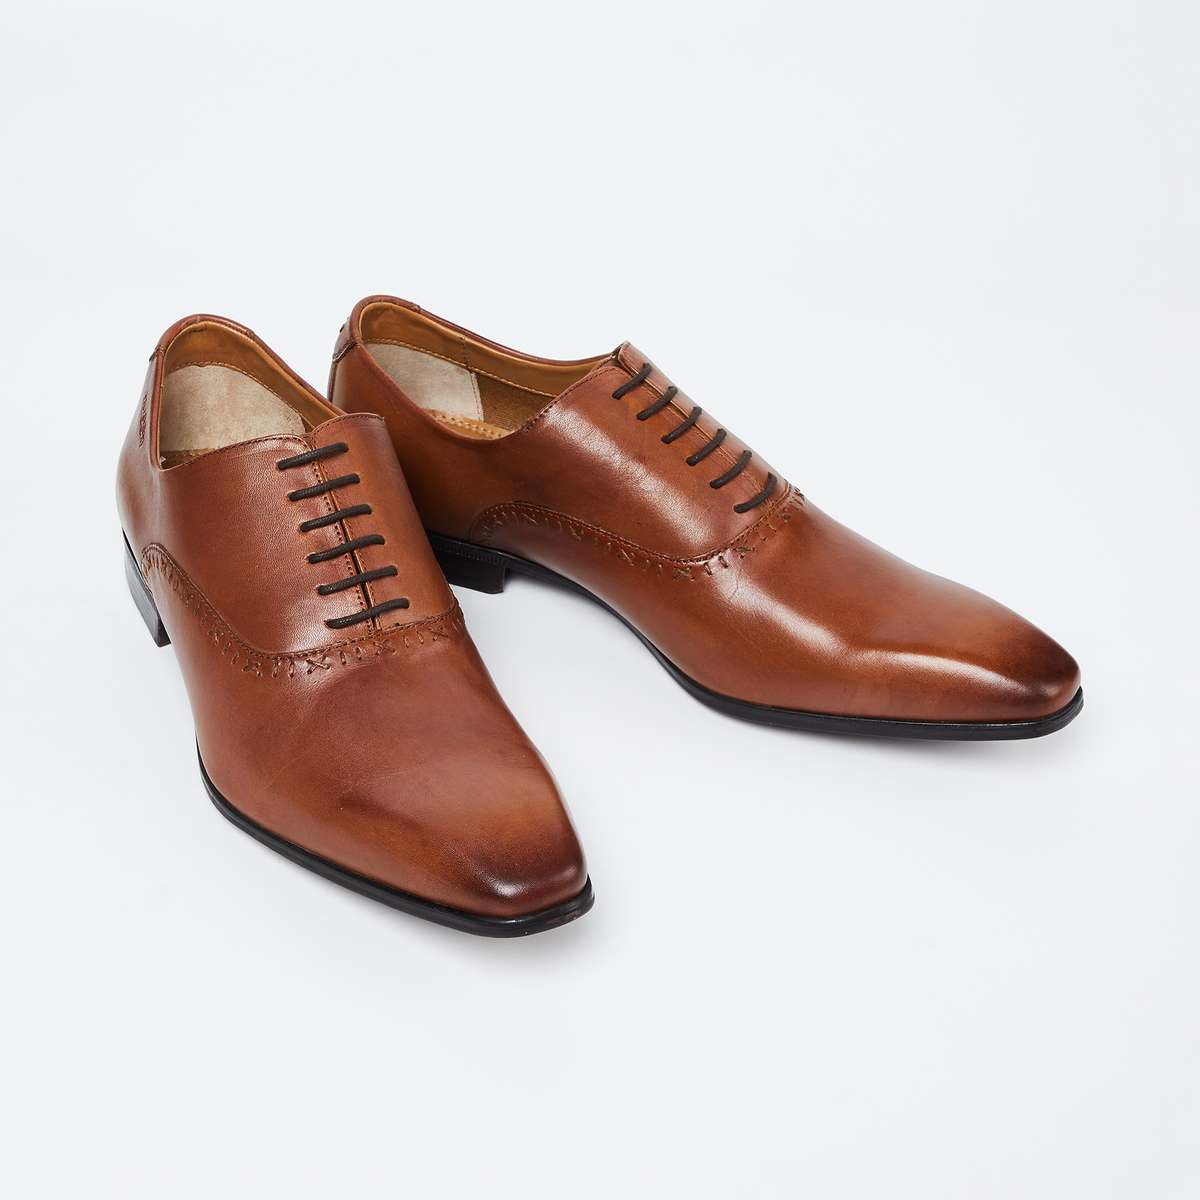 RUOSH Solid Formal Oxford Shoes